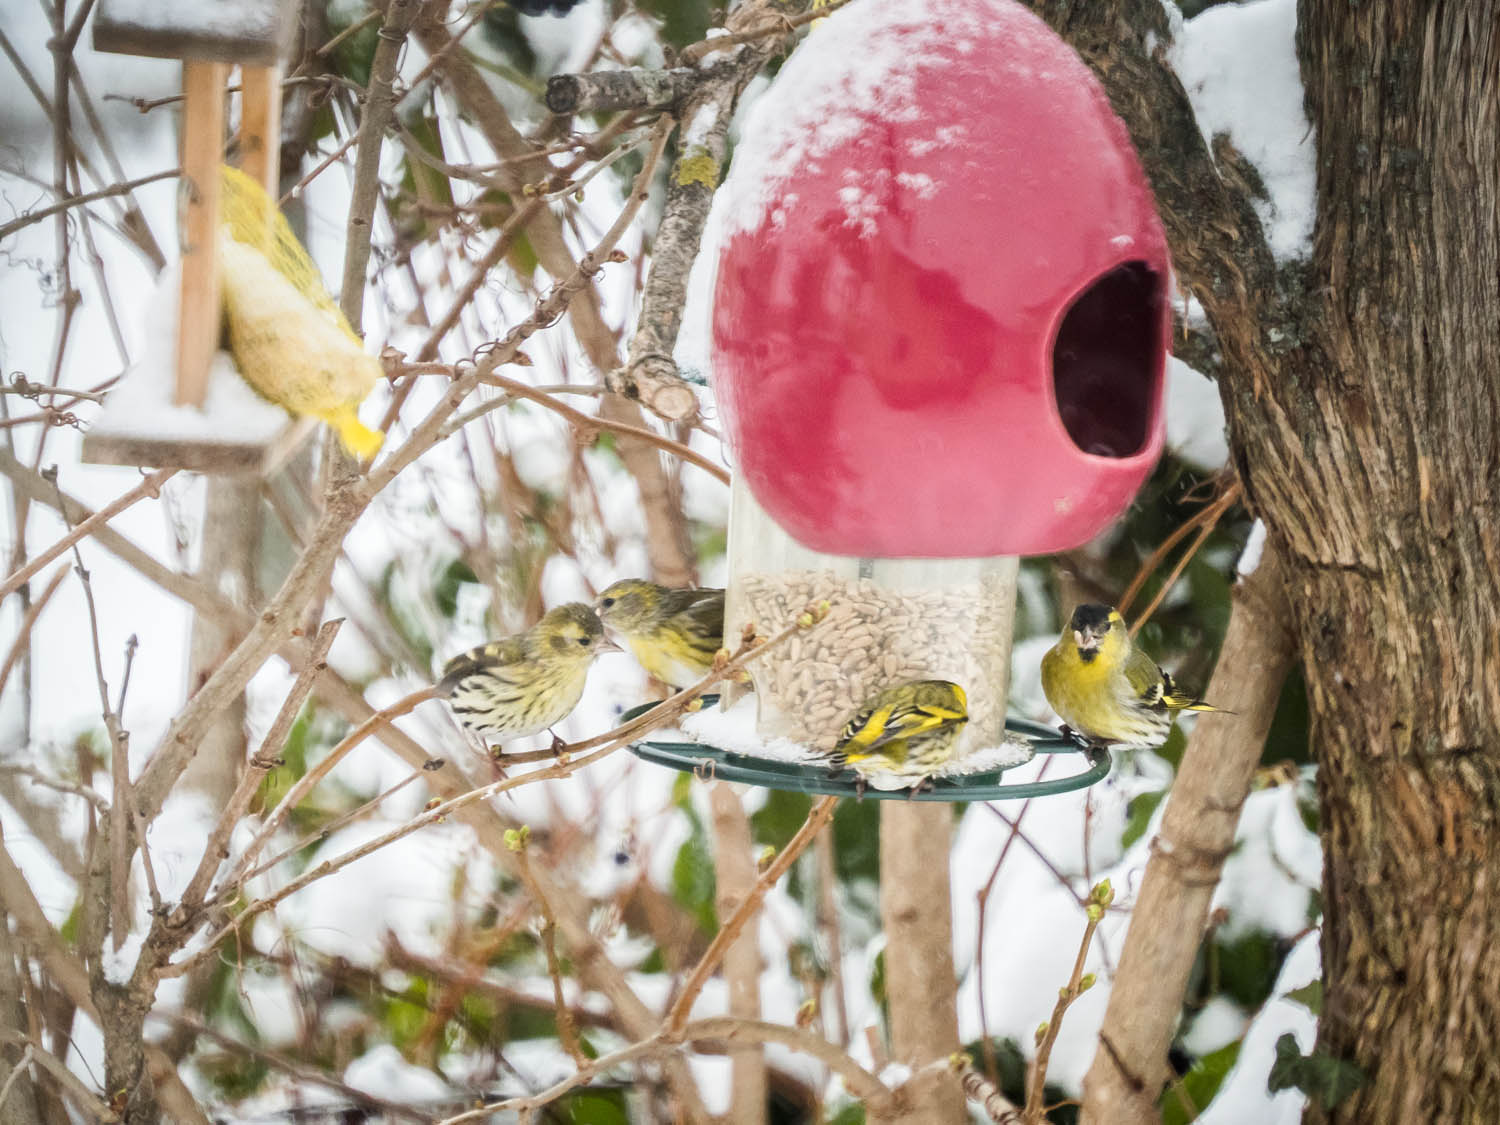 Winterliche Vogelparade: Das Video